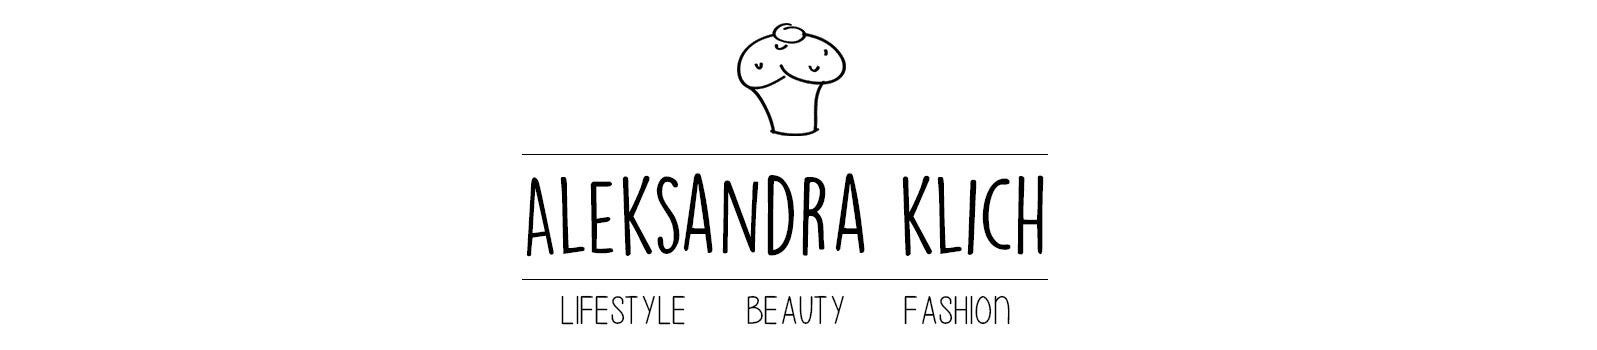 aleksandra klich | lifestyle, beauty, fashion